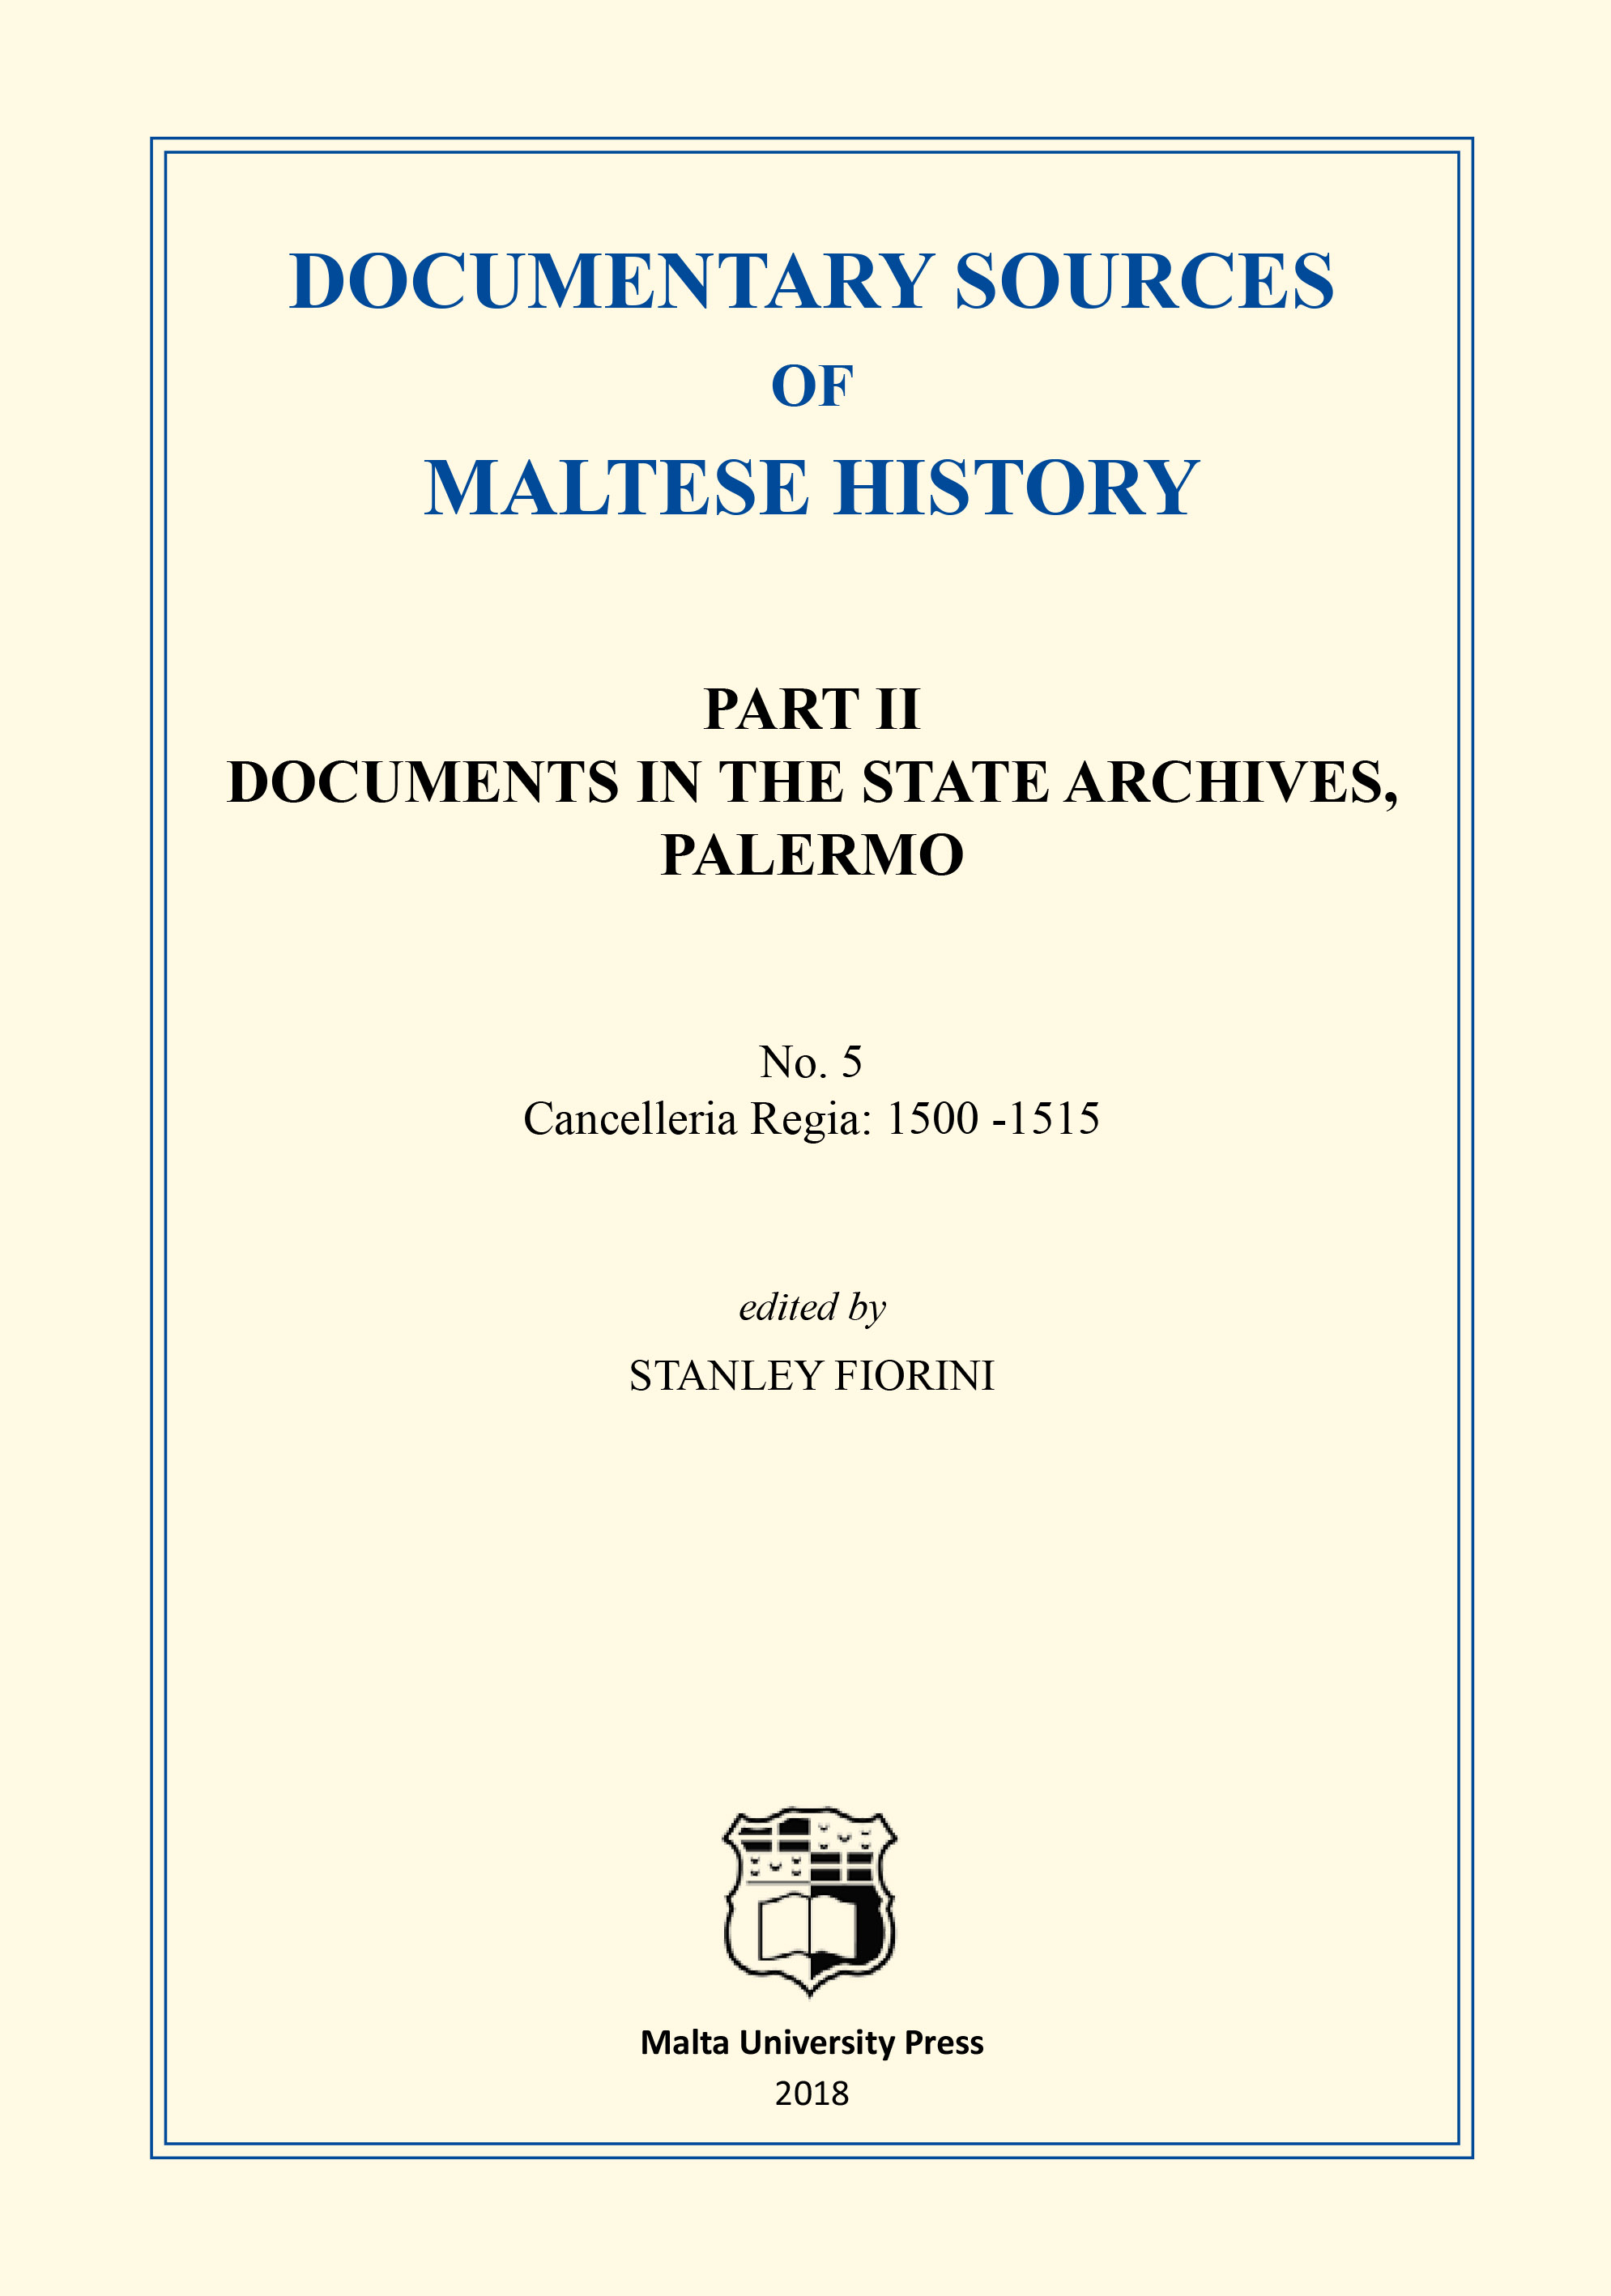 Doentary Sources - Malta University Press - University of ... on cr 521 angleton tx in map, dungeons and dragons wizards lair map, il-2 battle of stalingrad map,